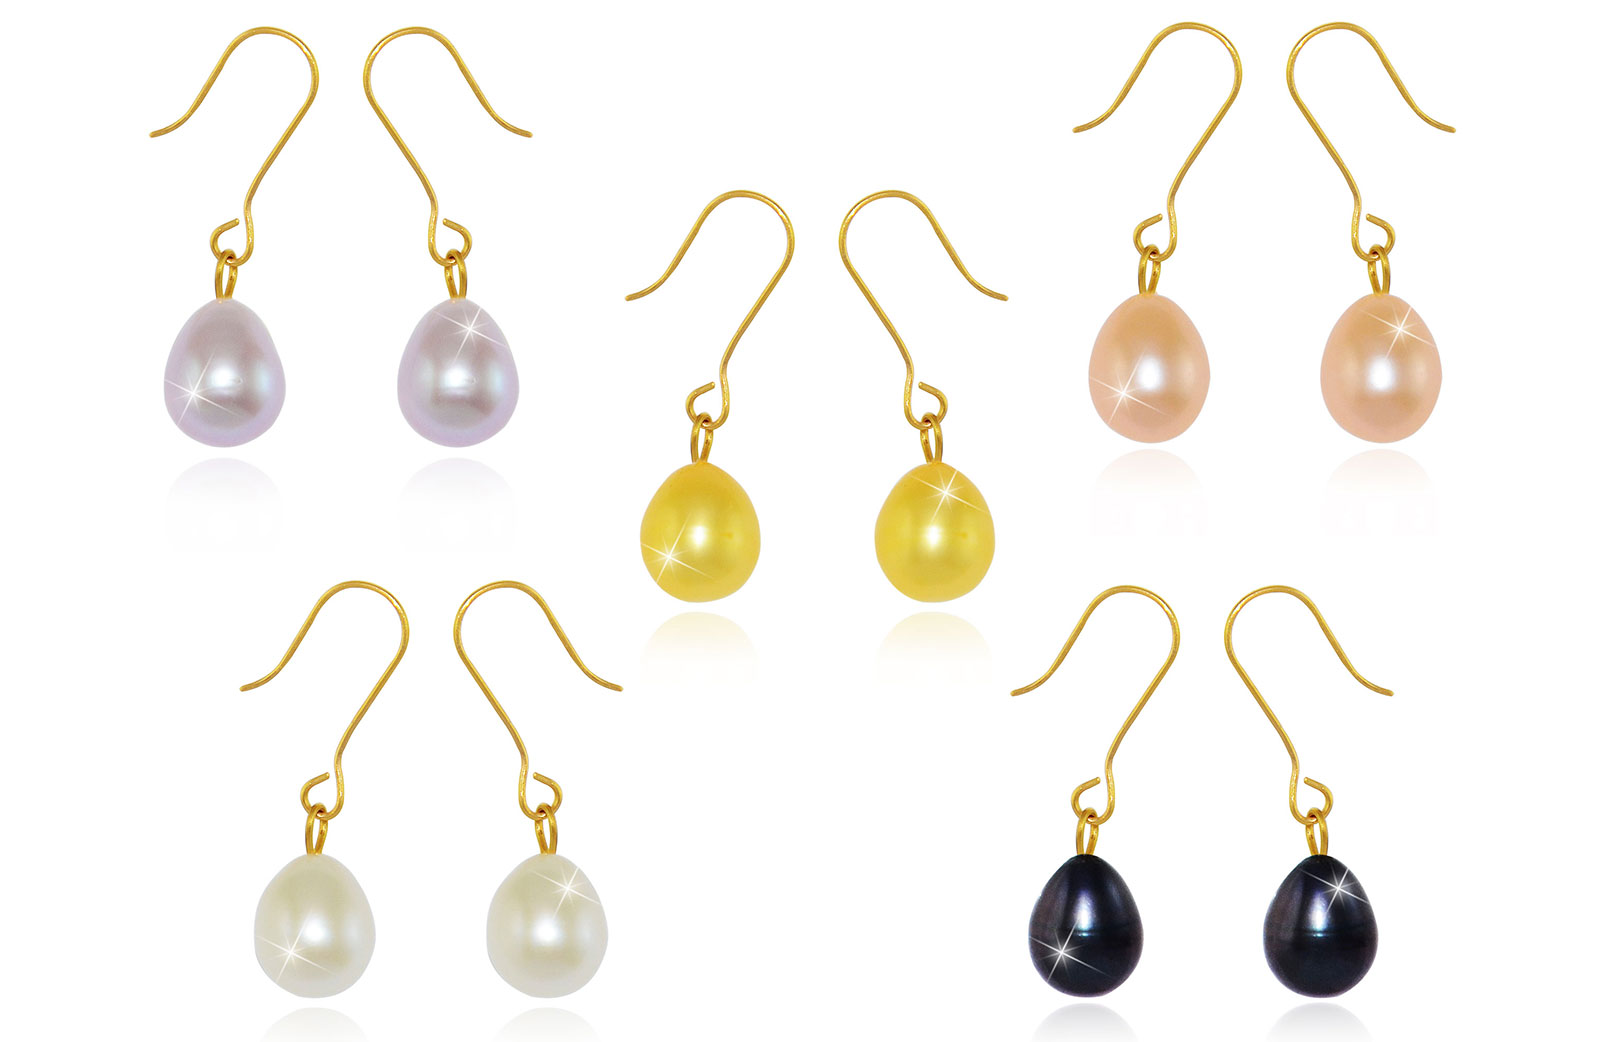 Vera Perla 18K Gold 7mm Pearls 5 Pairs Earrings